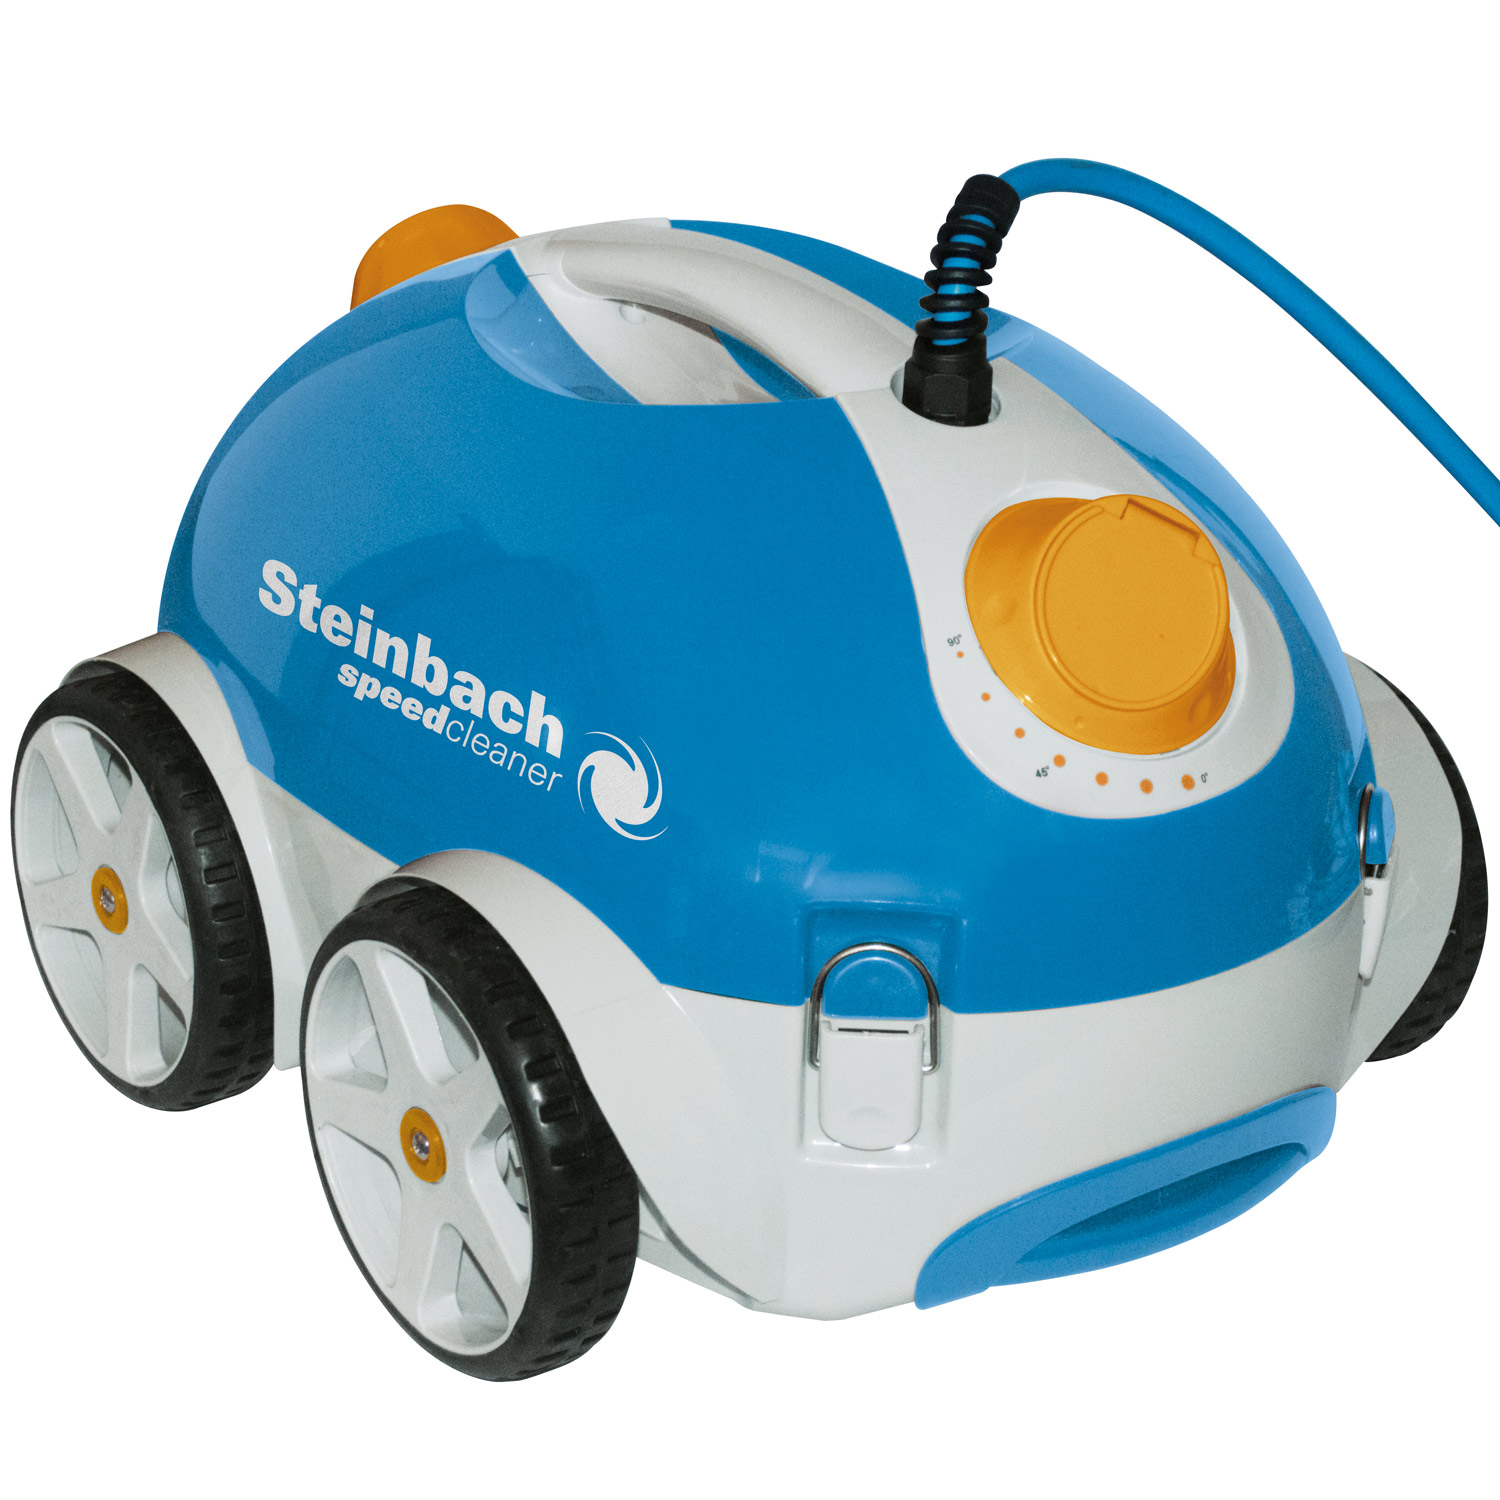 Schwimmbadreiniger speedcleaner poolrunner for Poolzubehor obi